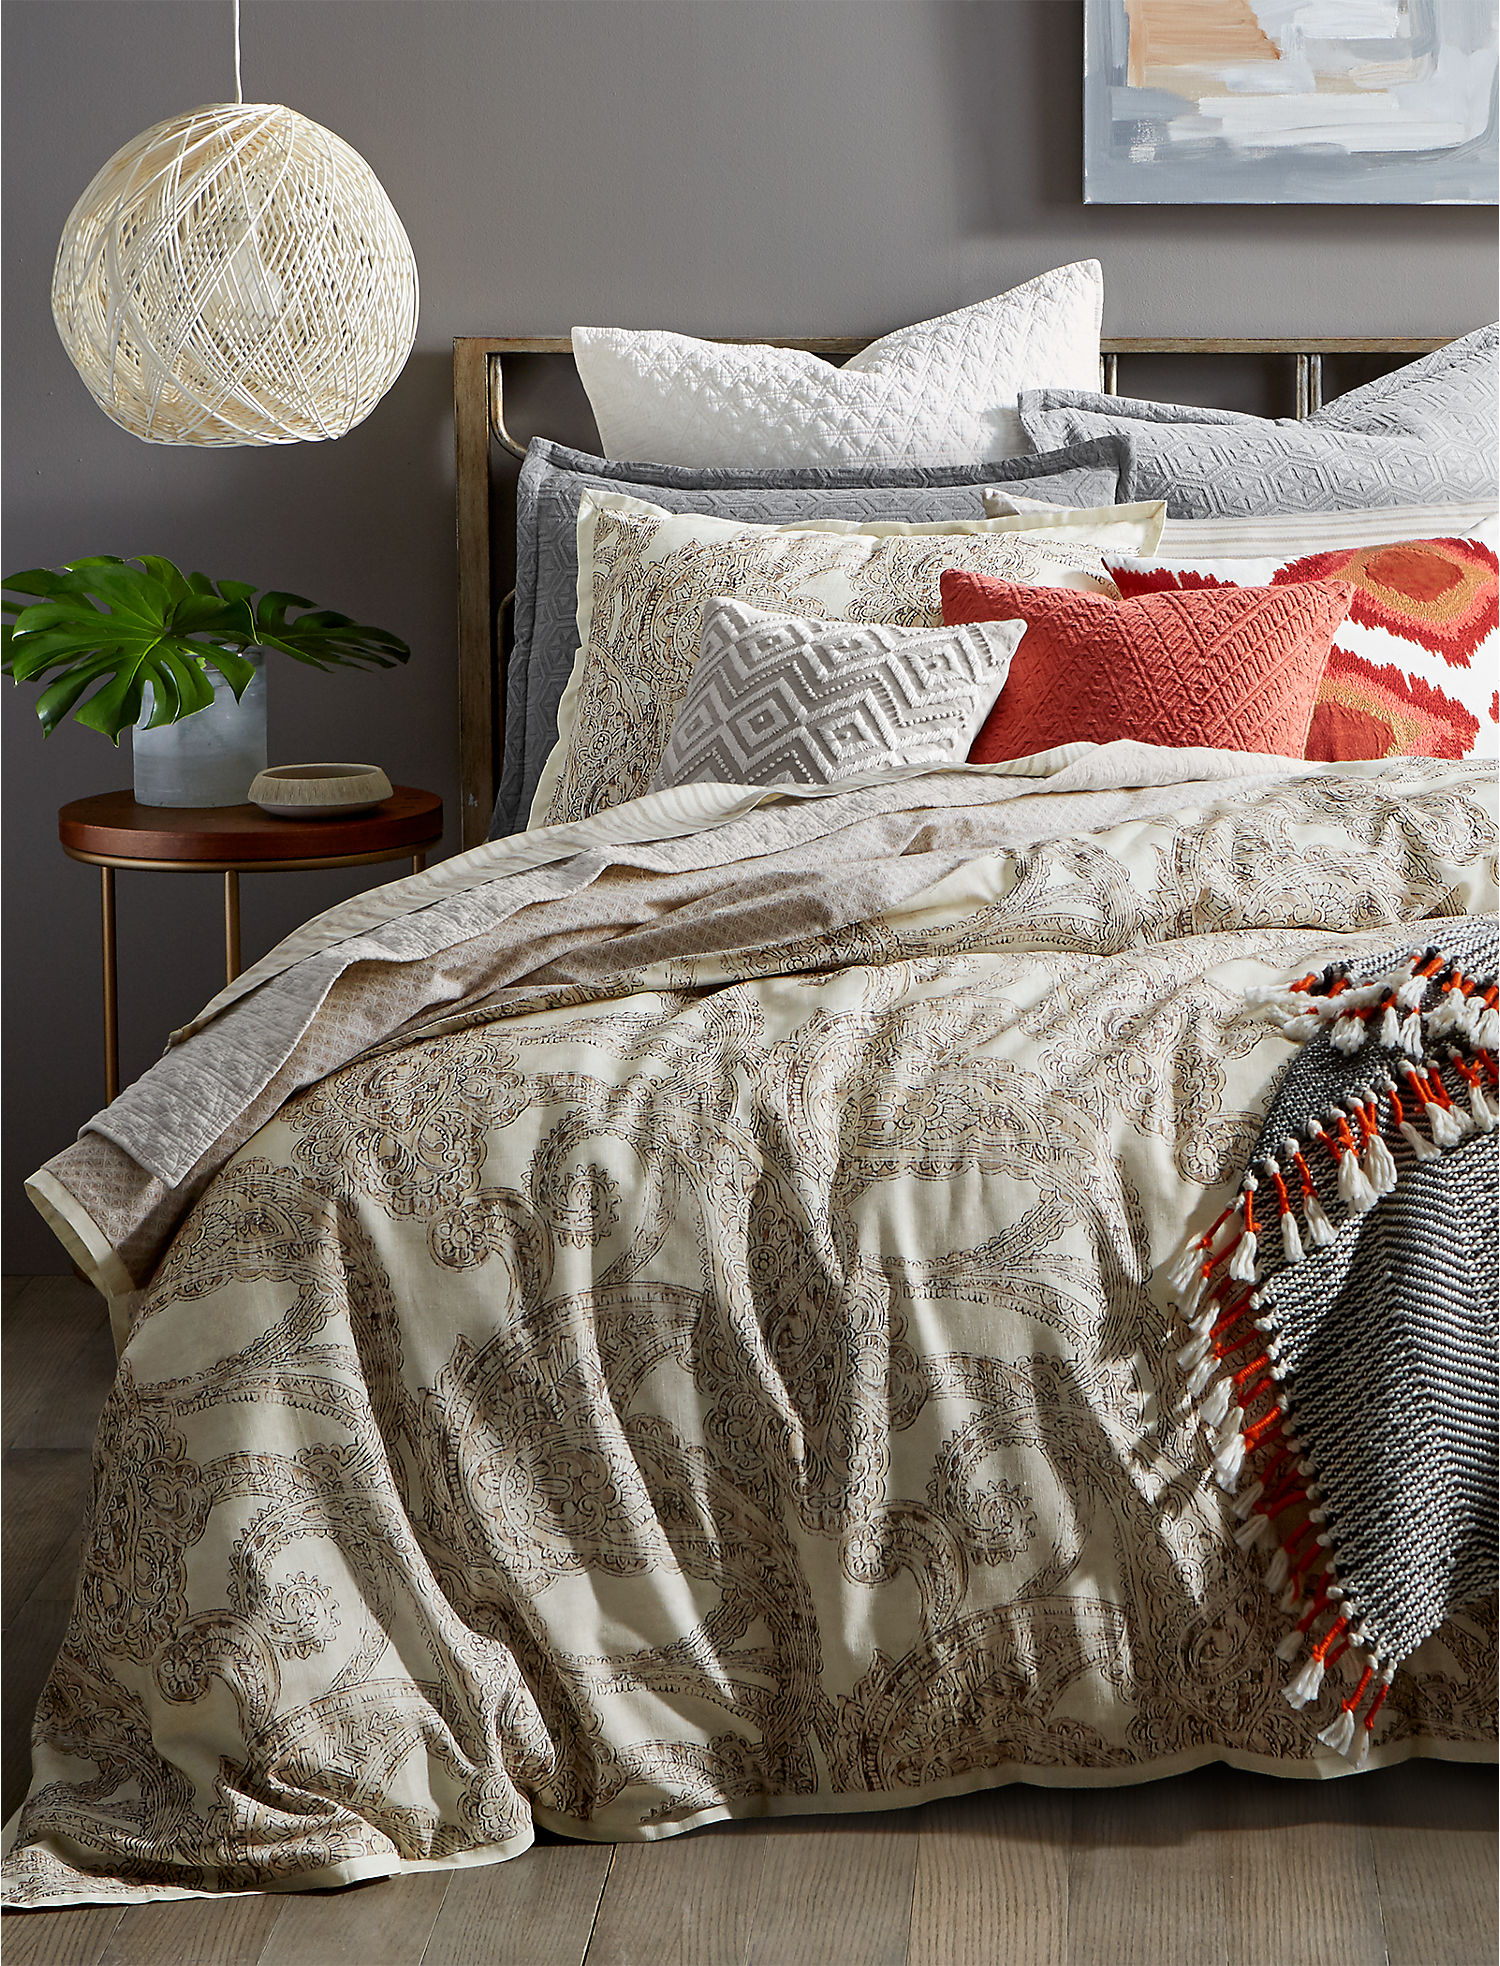 bed tips new home comforter buy incredible king with combine quilts beyond for bedspread fetching oversized decor from sets interior bath